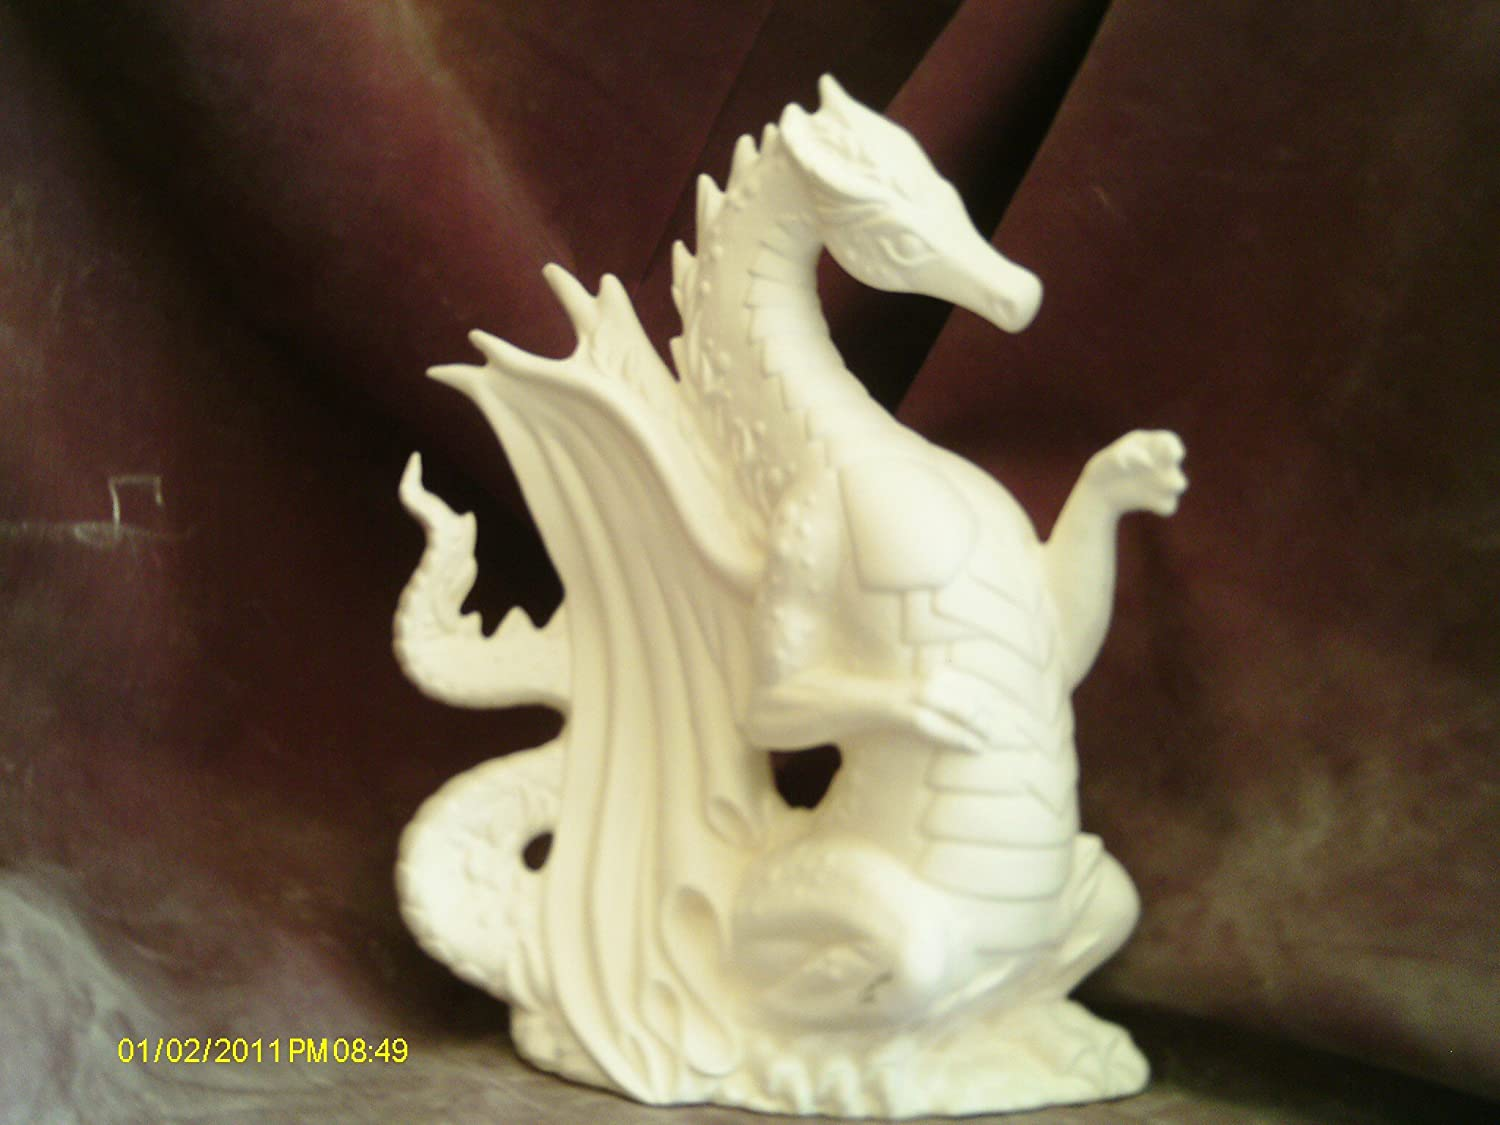 Shop amazon ceramics pottery ready to paint ceramics fire dragon 9 x 7 ceramic bisque dailygadgetfo Choice Image